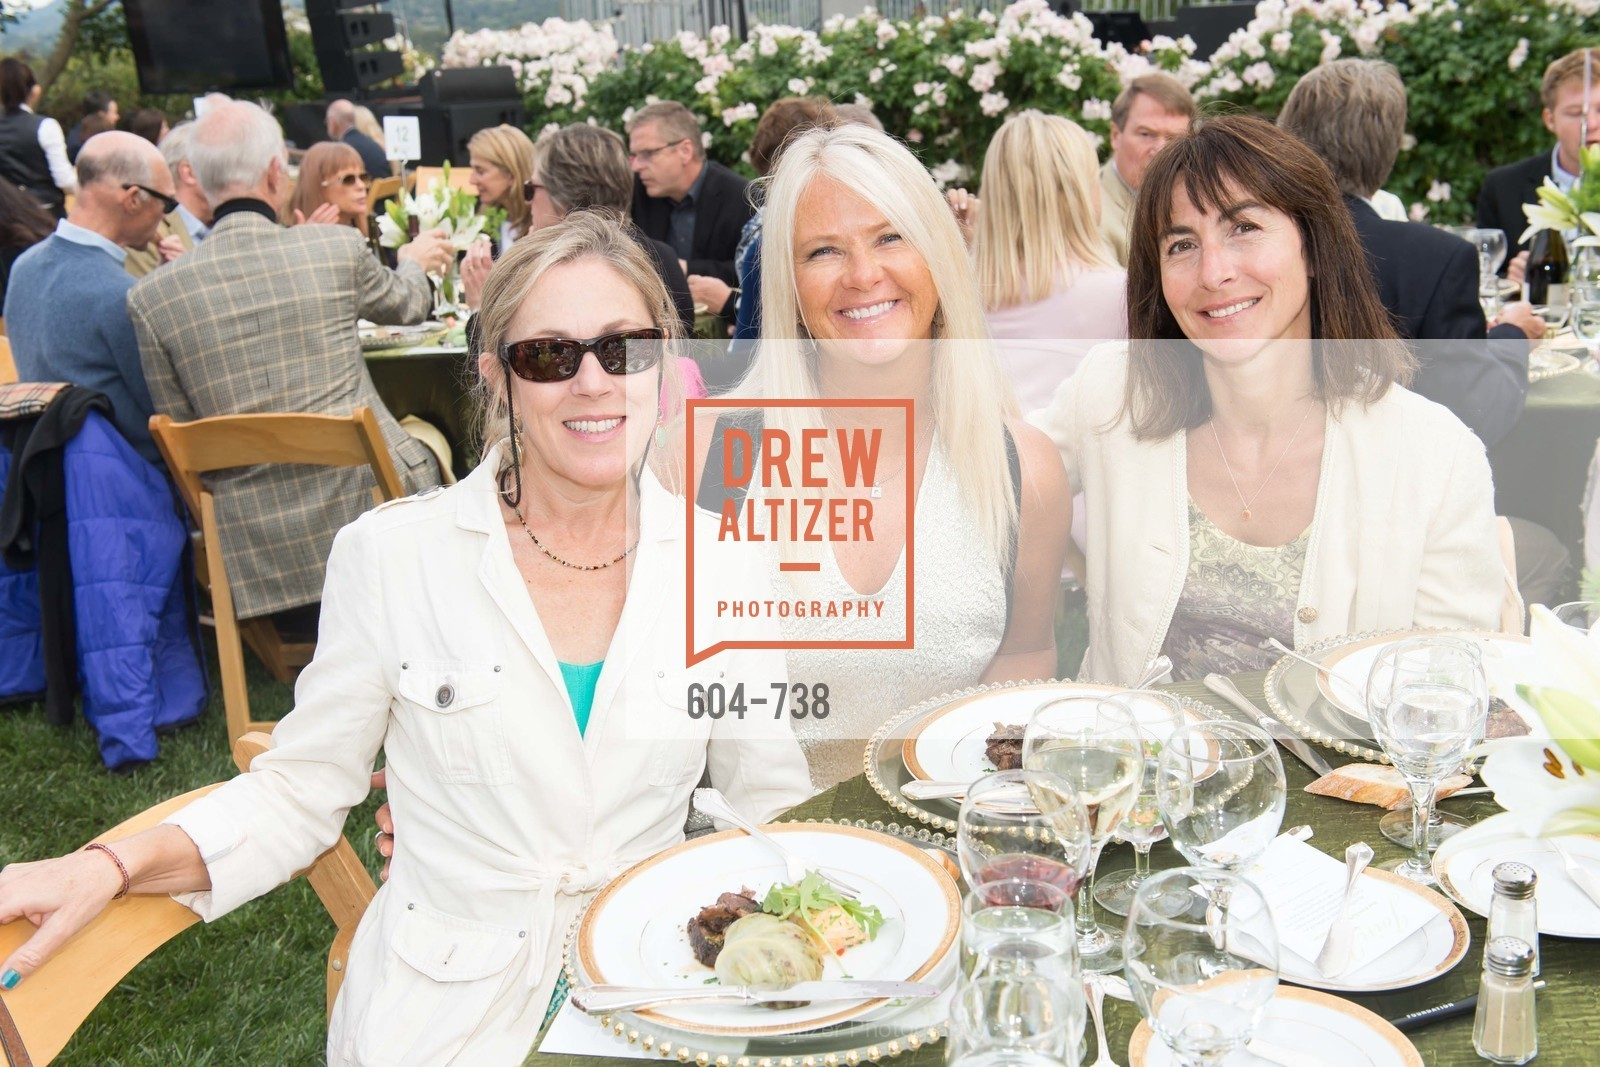 Mary Zarucchi, Tine Norman, Valerie Morgan, LymeAid 2015, US, May 18th, 2015,Drew Altizer, Drew Altizer Photography, full-service agency, private events, San Francisco photographer, photographer california